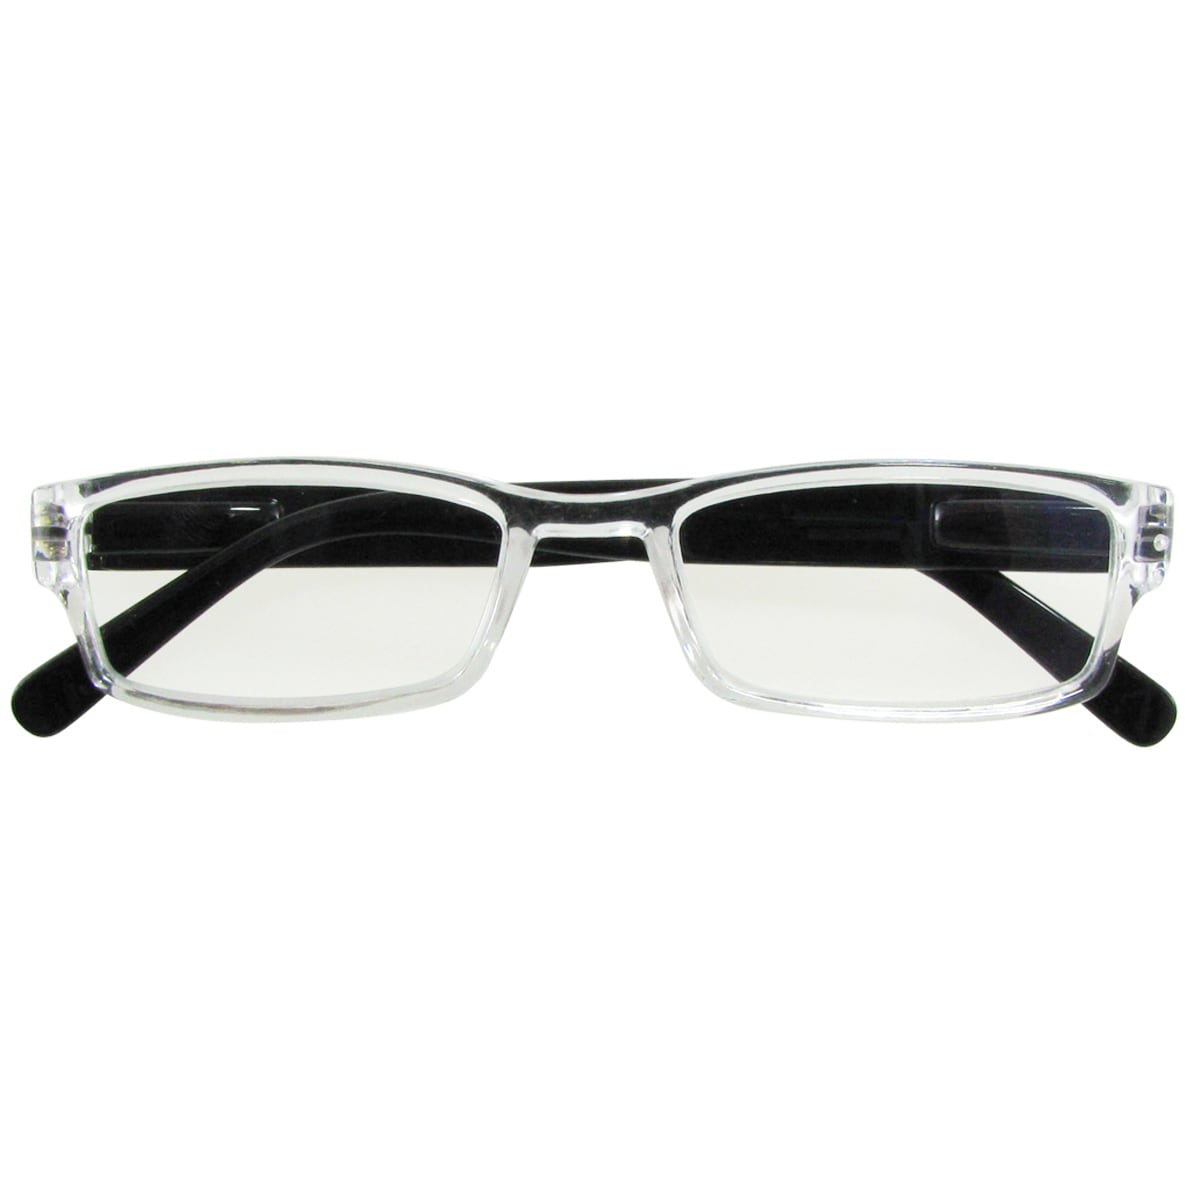 E-specs by Evolutioneyes Black/Clear Anti-reflective Computer Glasses